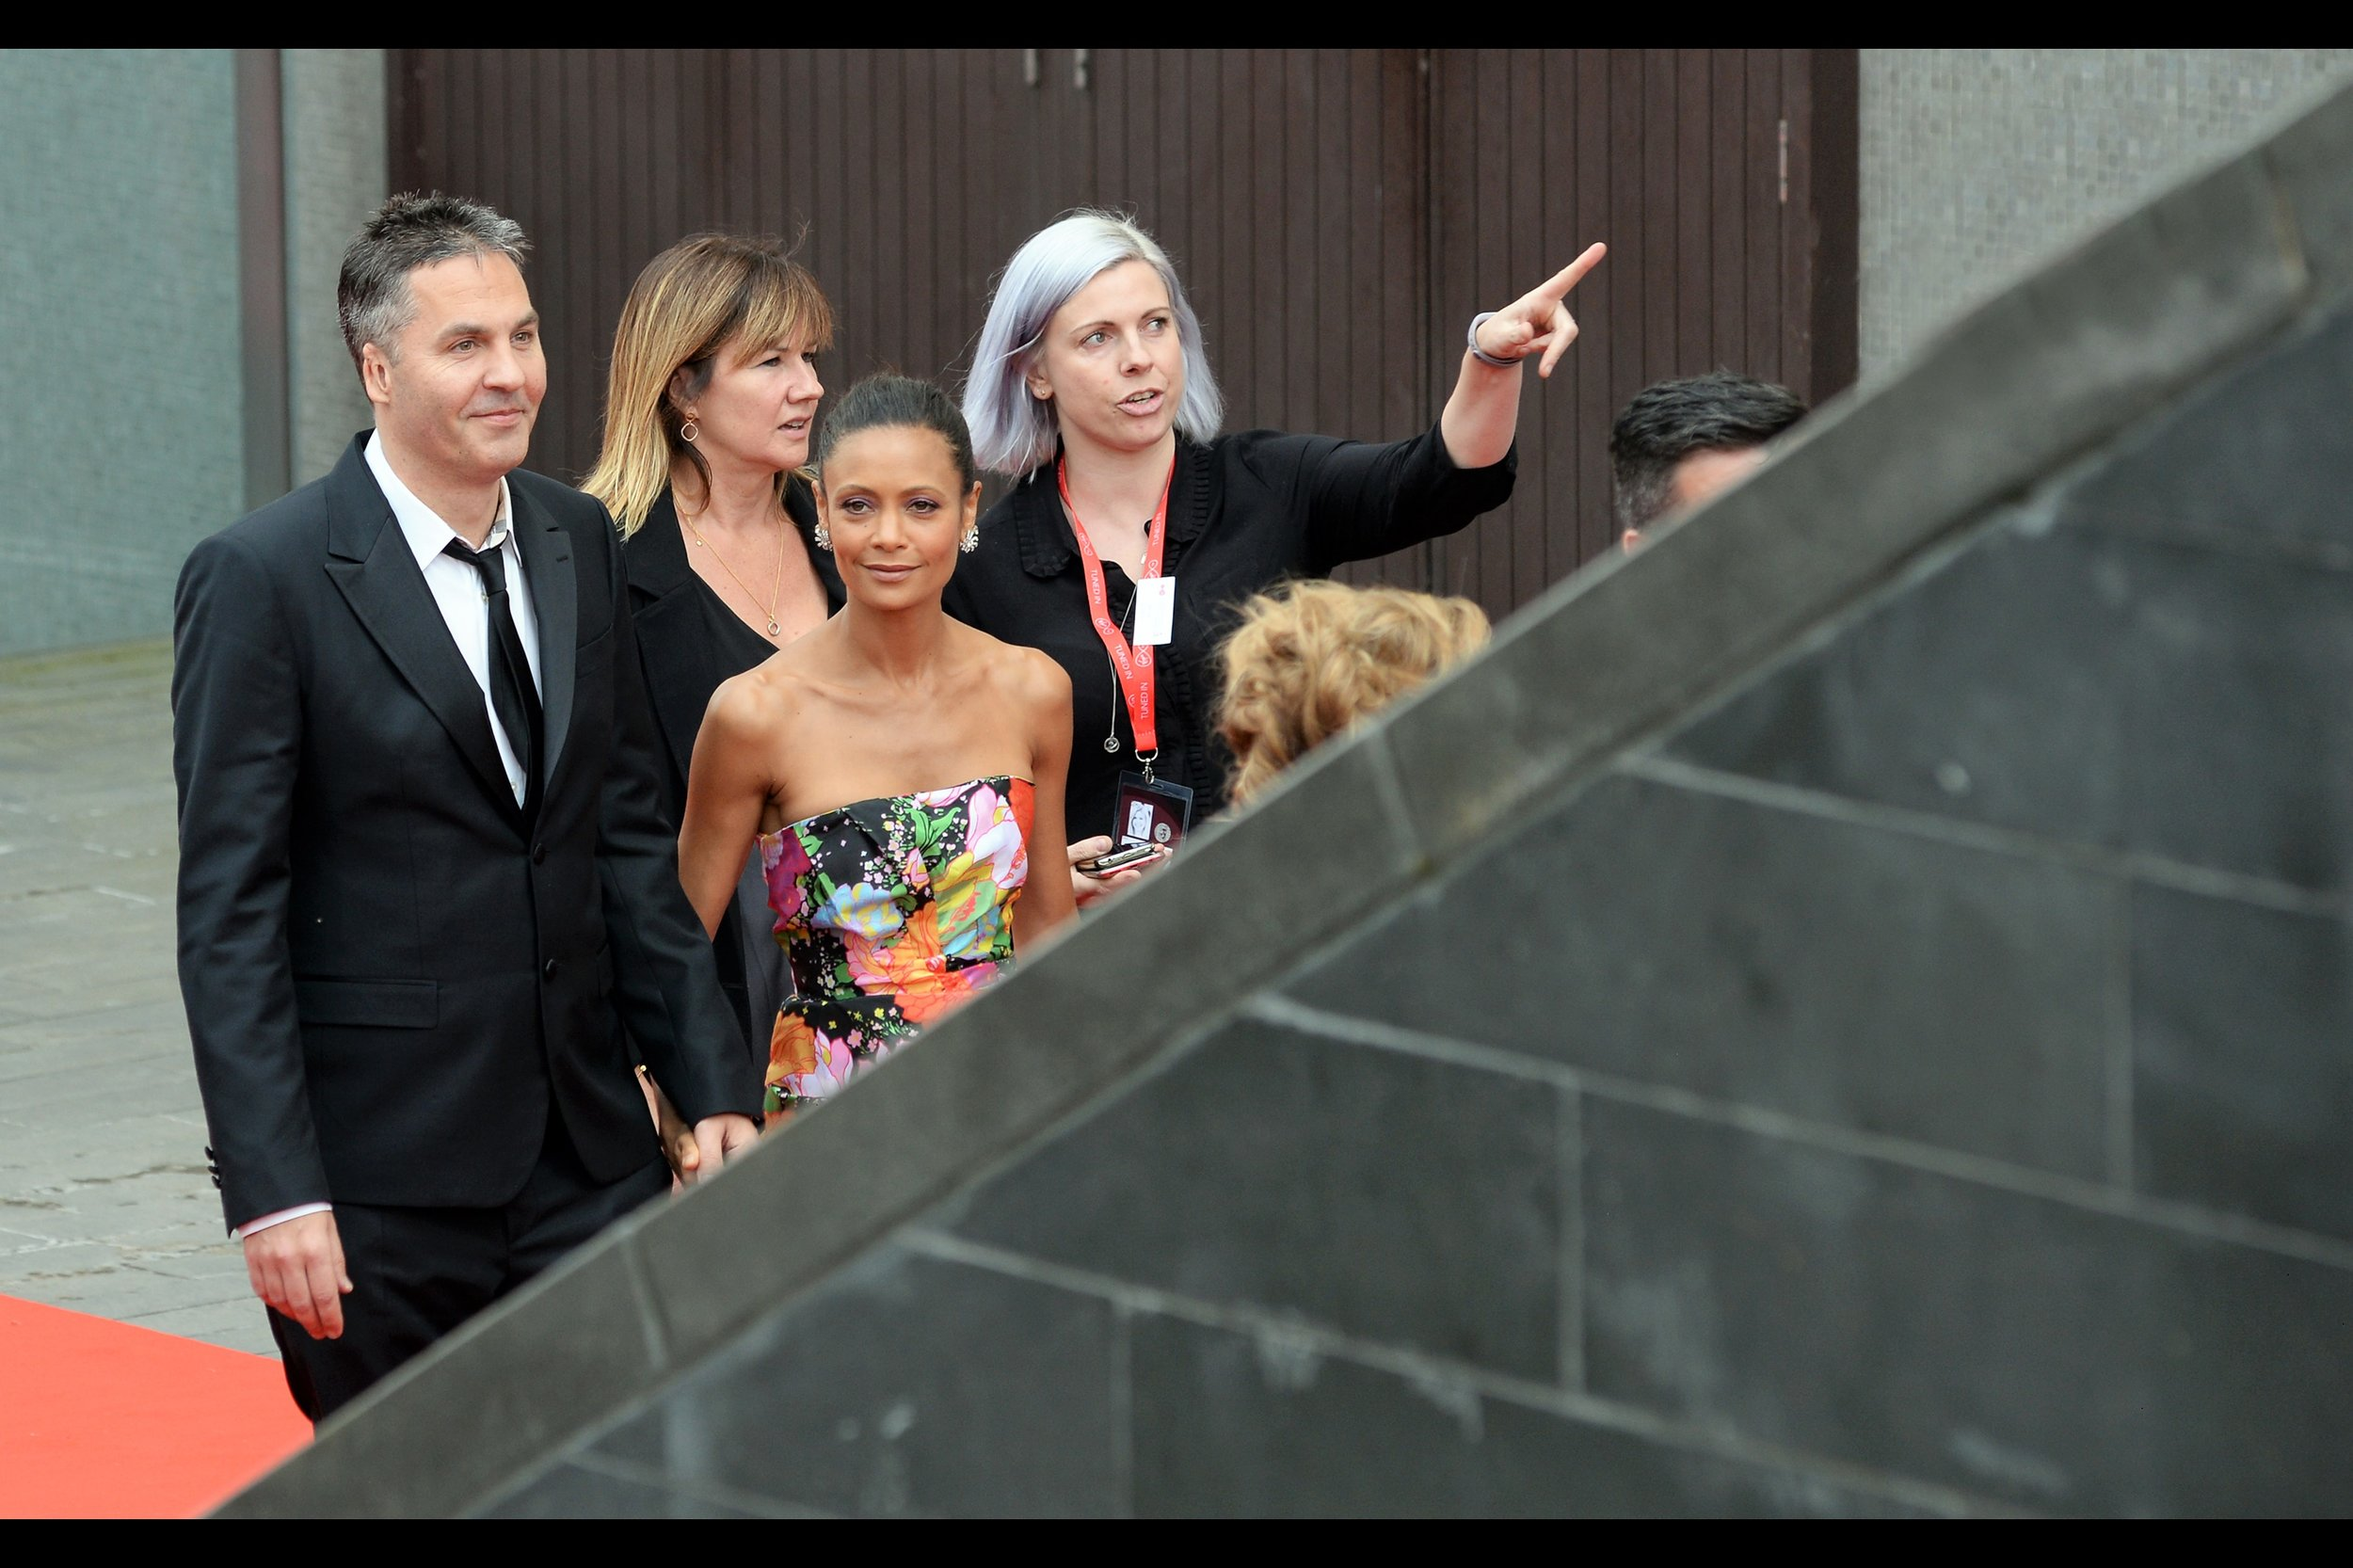 "Thandie Newton was in Mission Impossible 2 (the John Woo one set in Australia that's probably rightfully despised but her midriff was excellent in it), and the movie ""Chronicles of Riddick"" which made MI:2 seem less horrific..... after that I'm not sure what she's done career wise : I kinda feel Naomie Harris stole her career somewhat?"